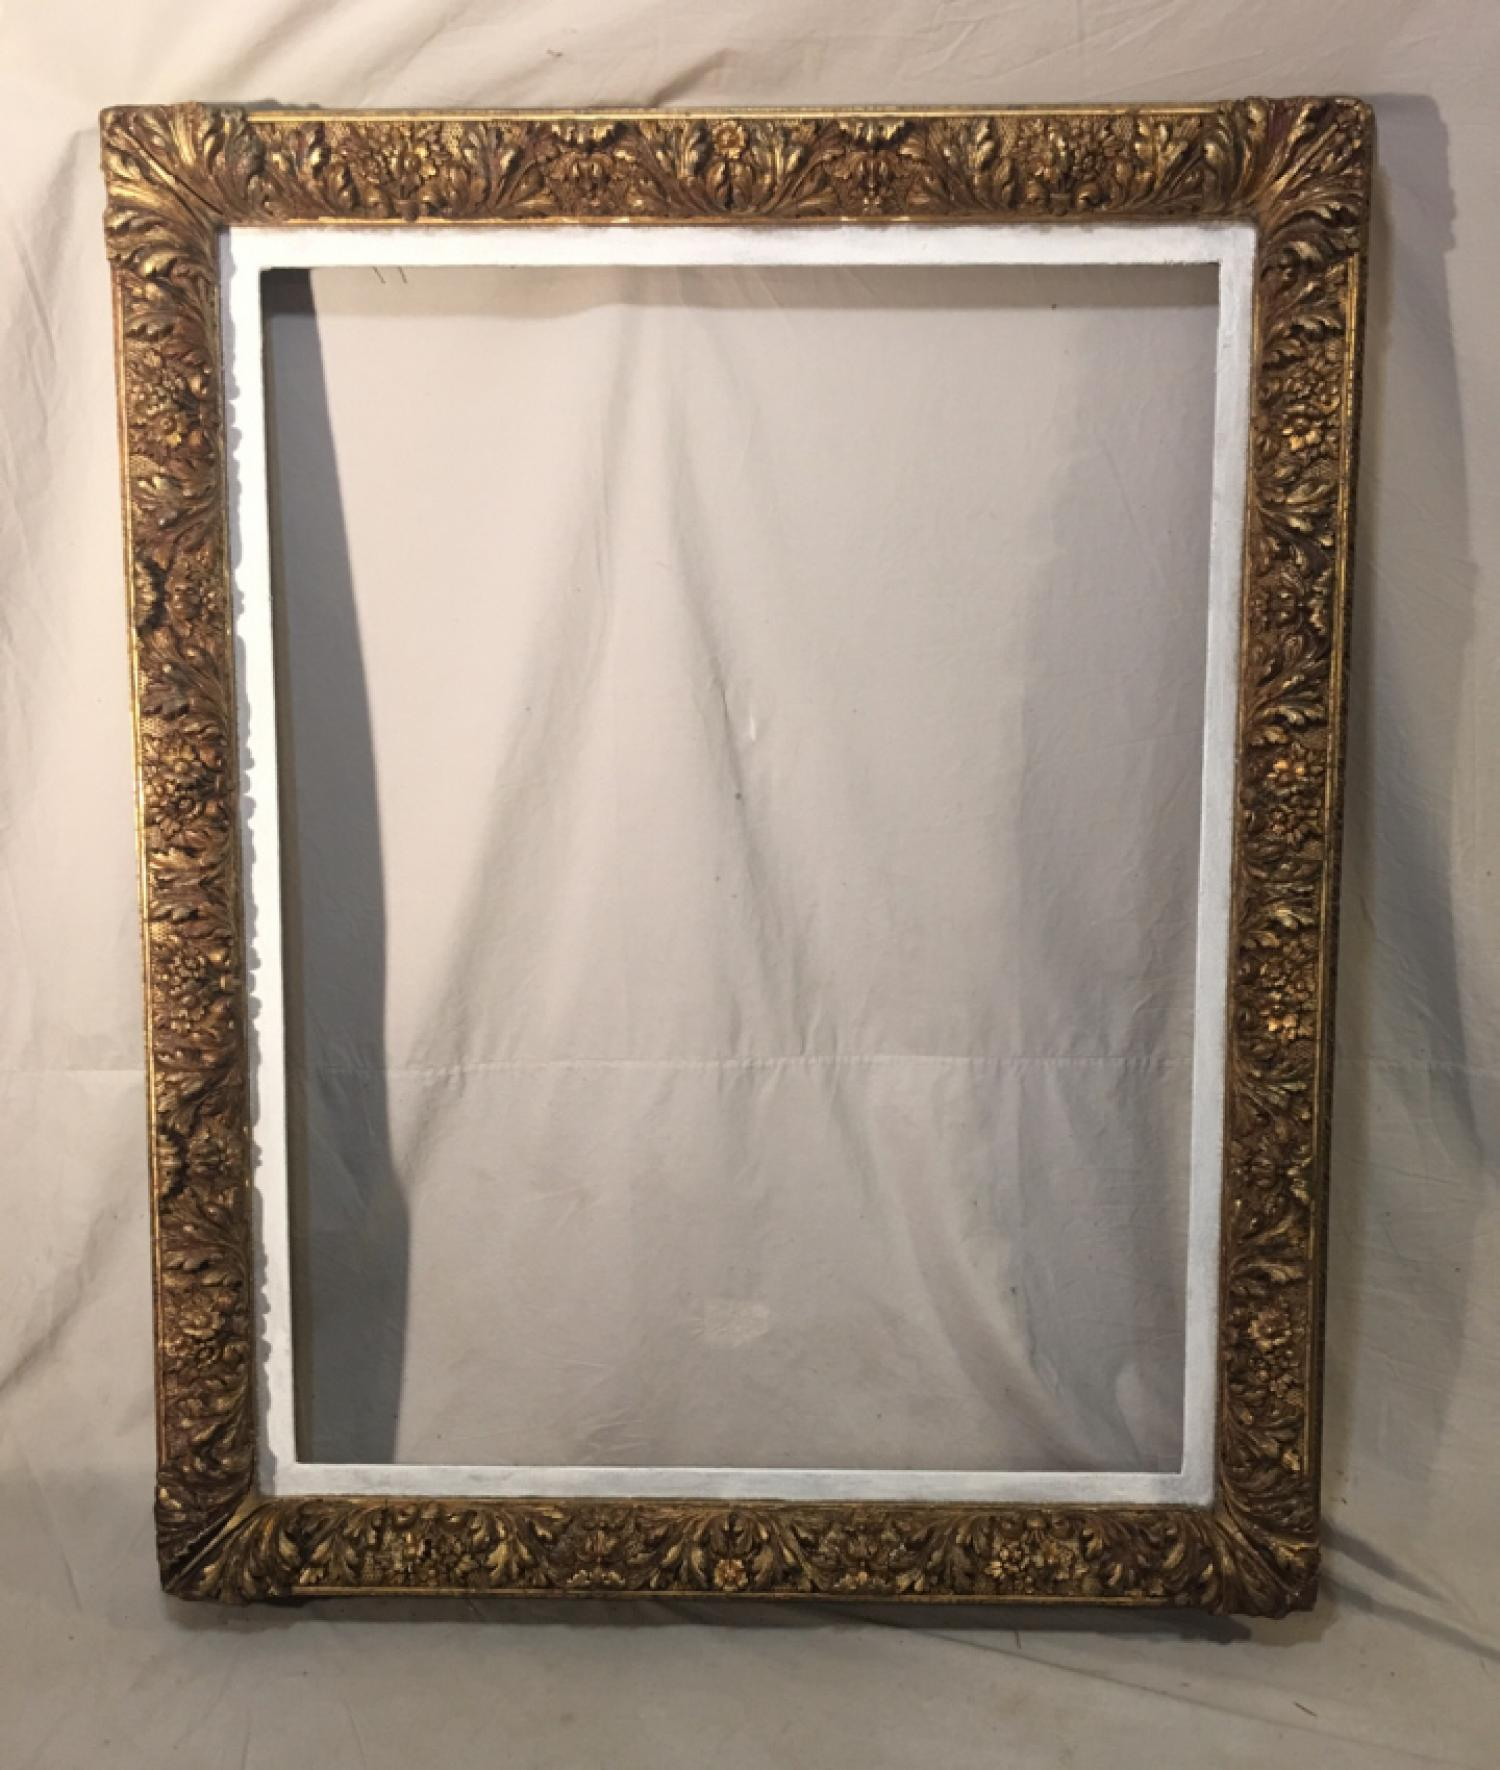 Large antique painting frame in baroque style